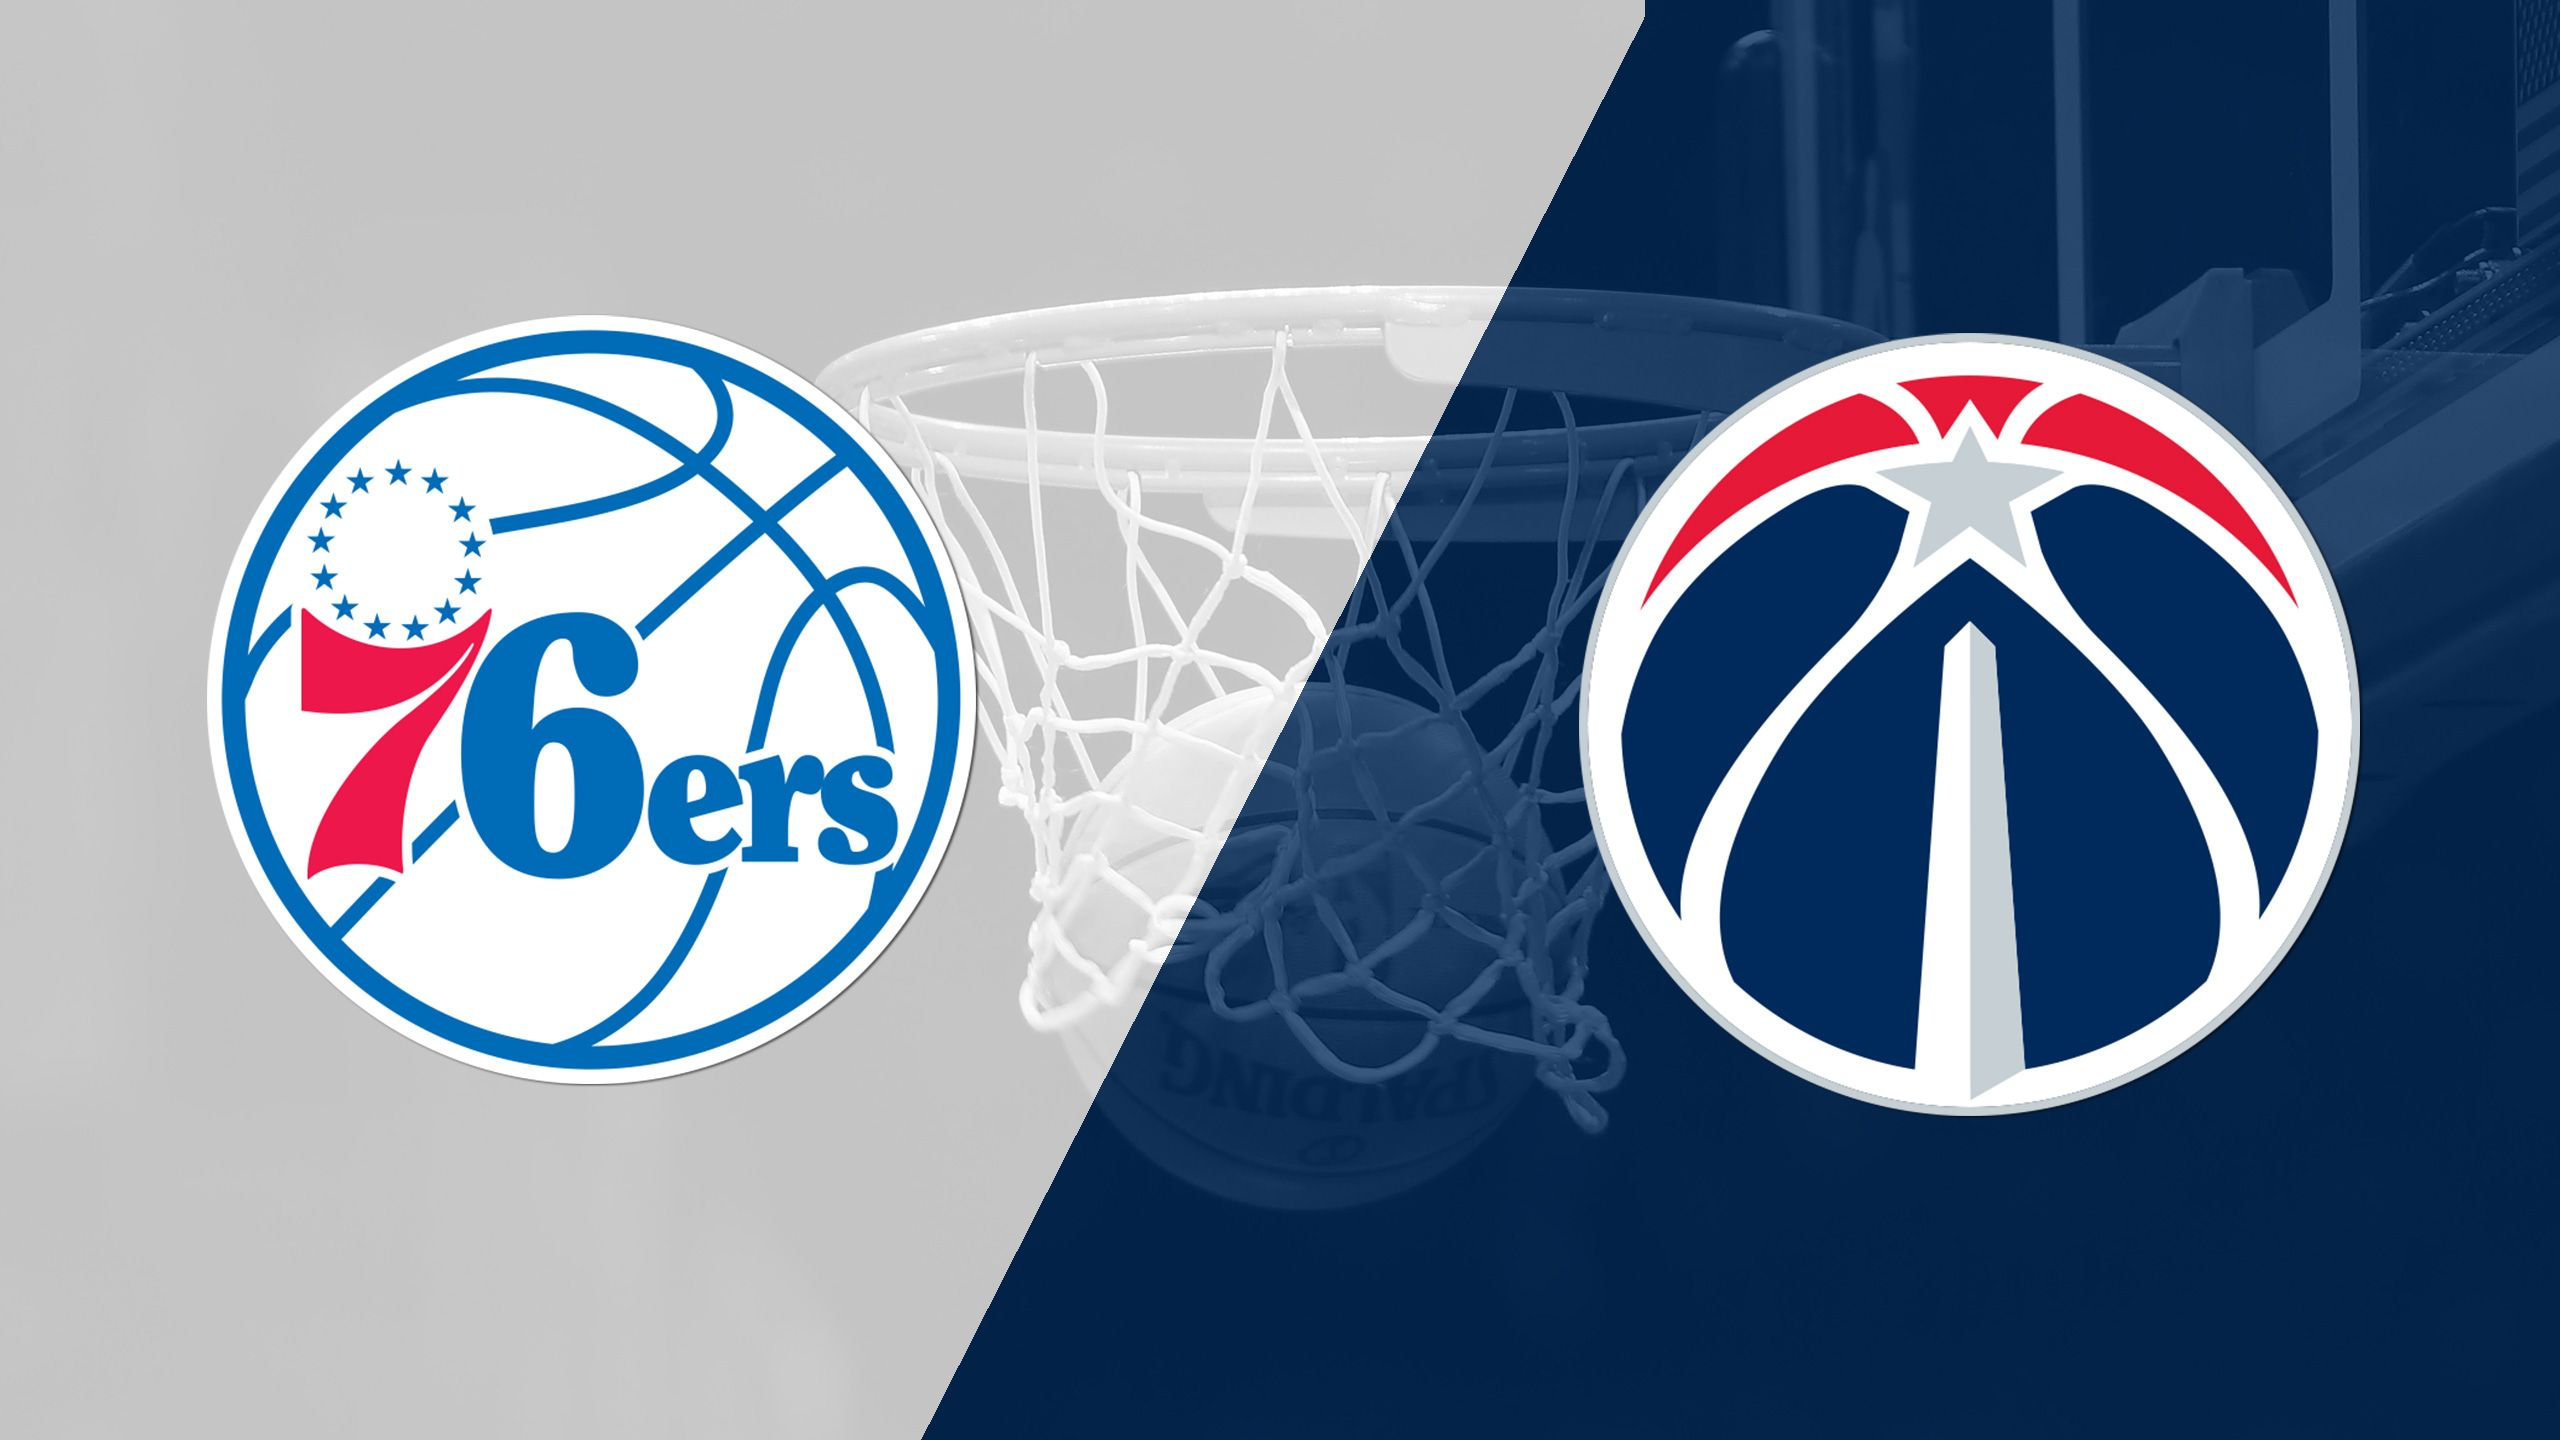 In Spanish - Philadelphia 76ers vs. Washington Wizards